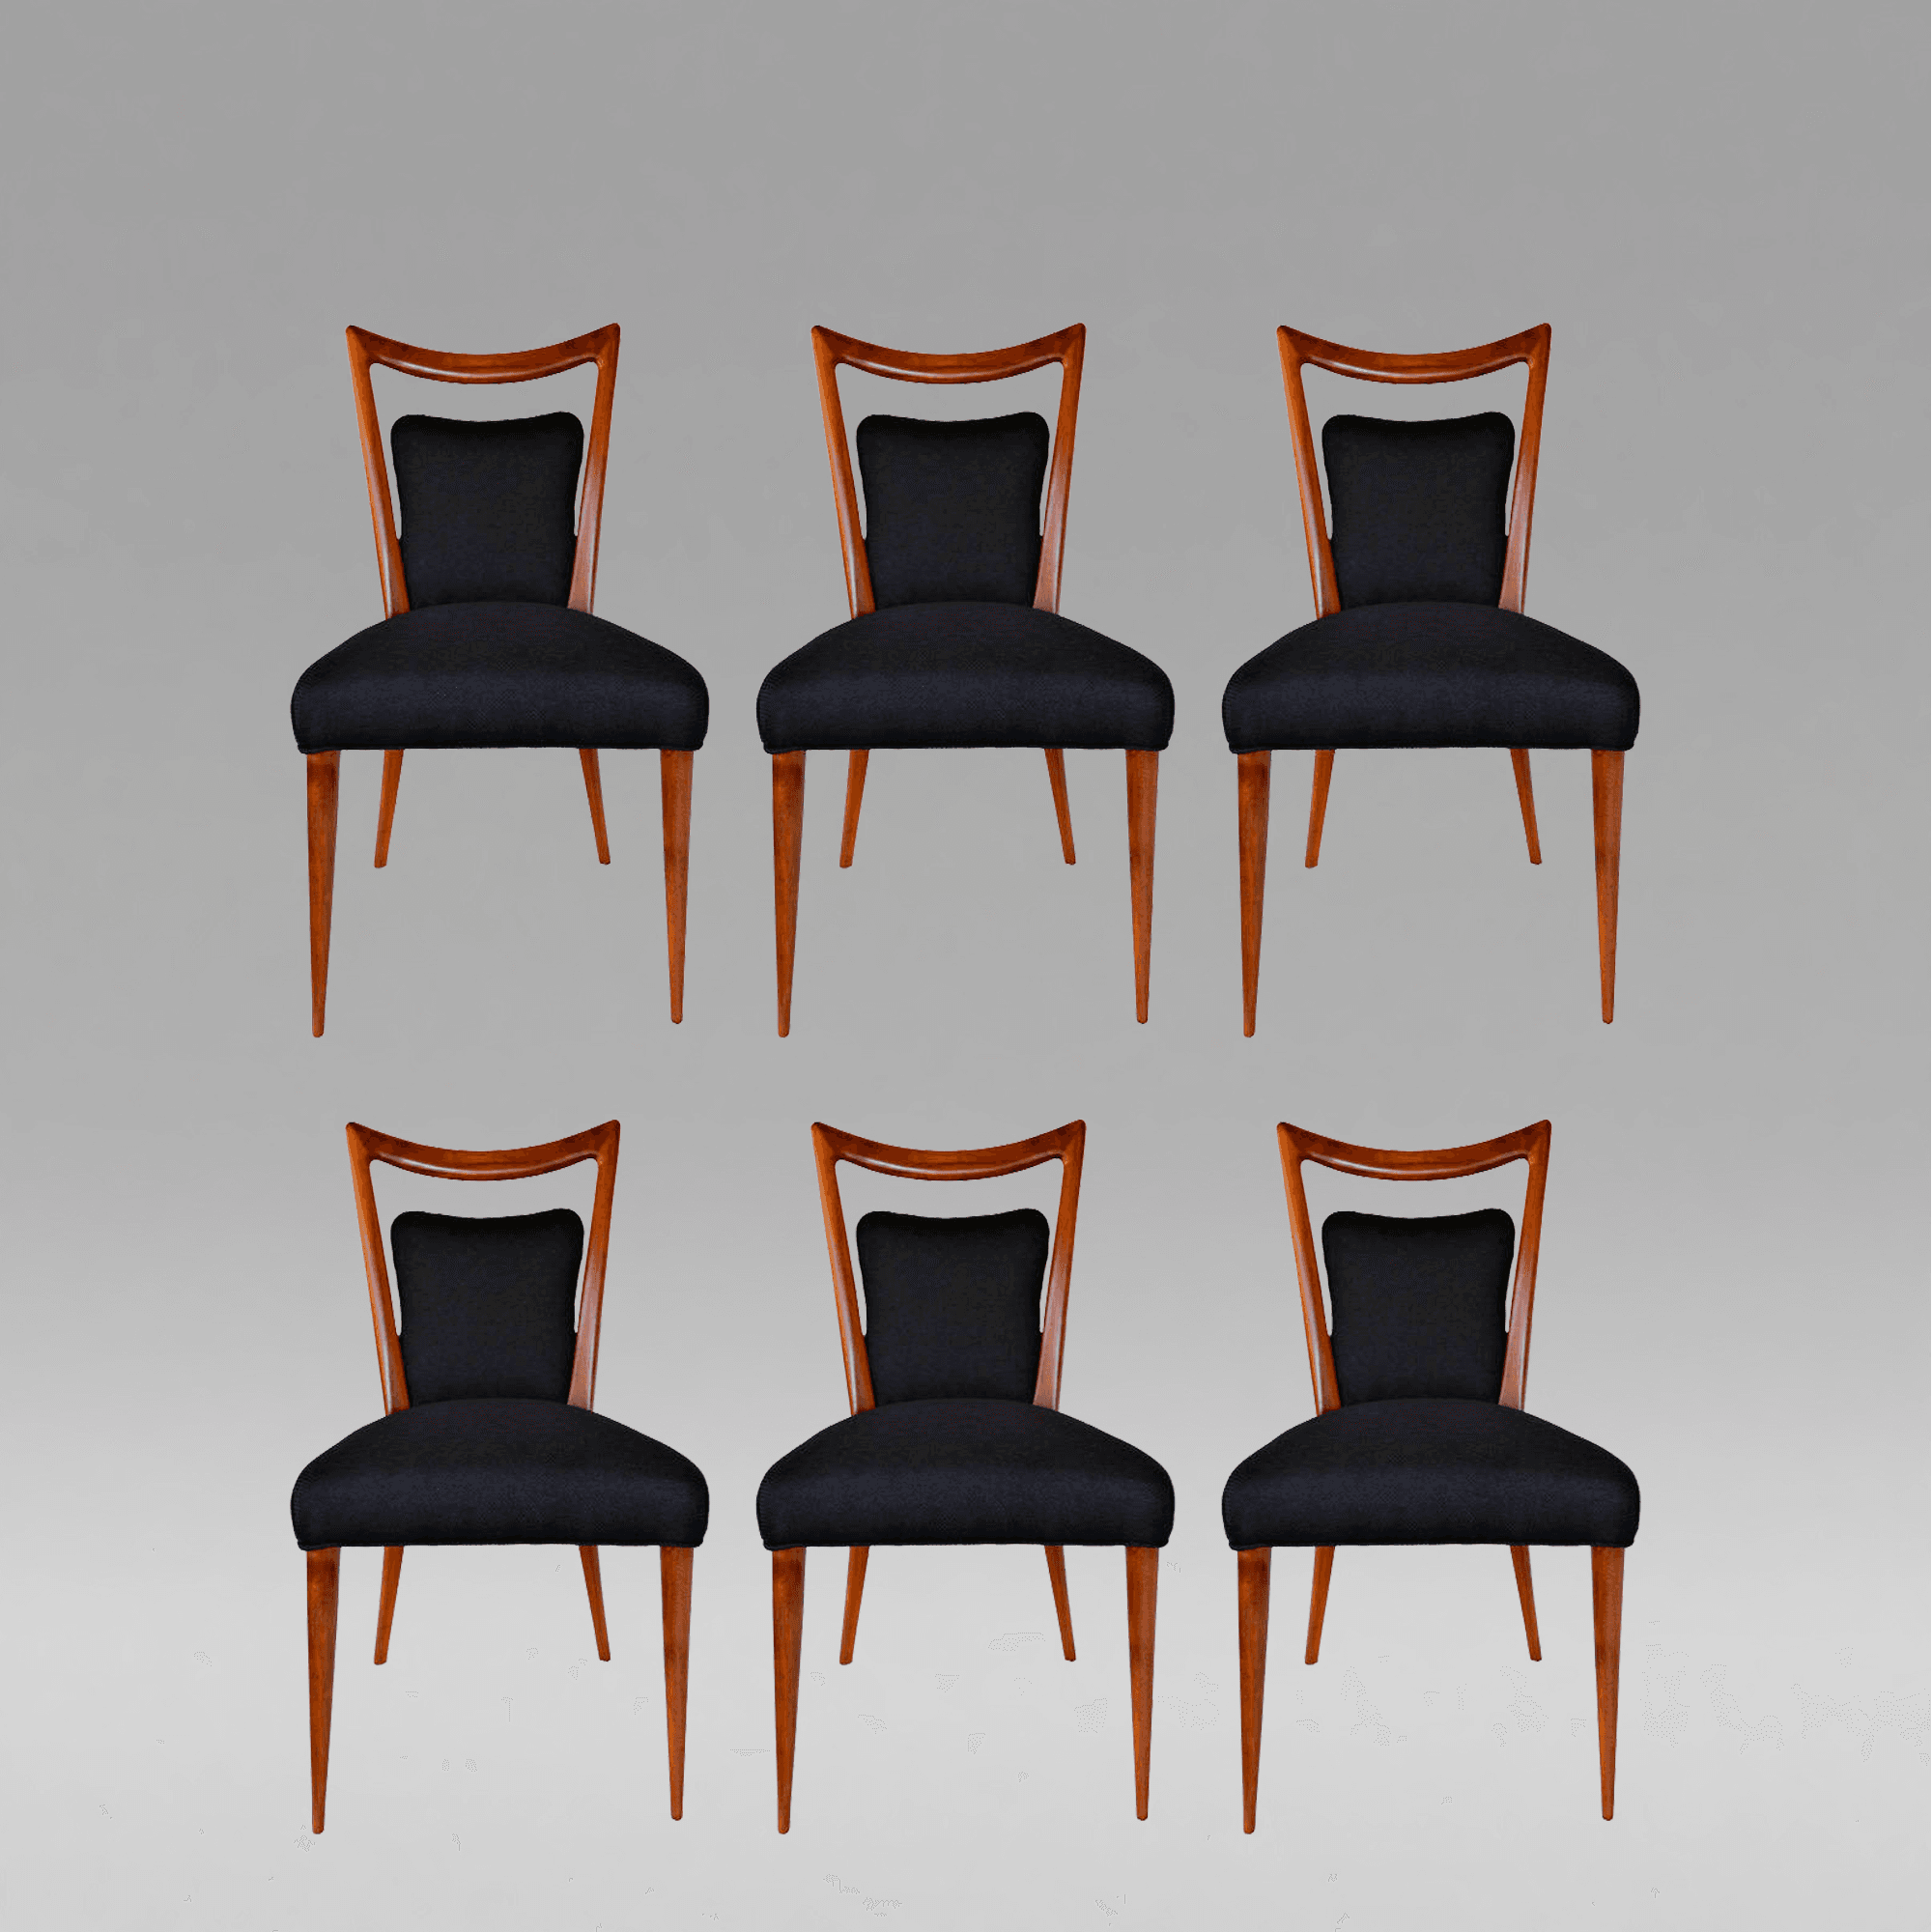 Rare Set Of Six Art Deco Dining Chairs By Melchiorre Bega, C. 1955.  Courtesy Of Archive.